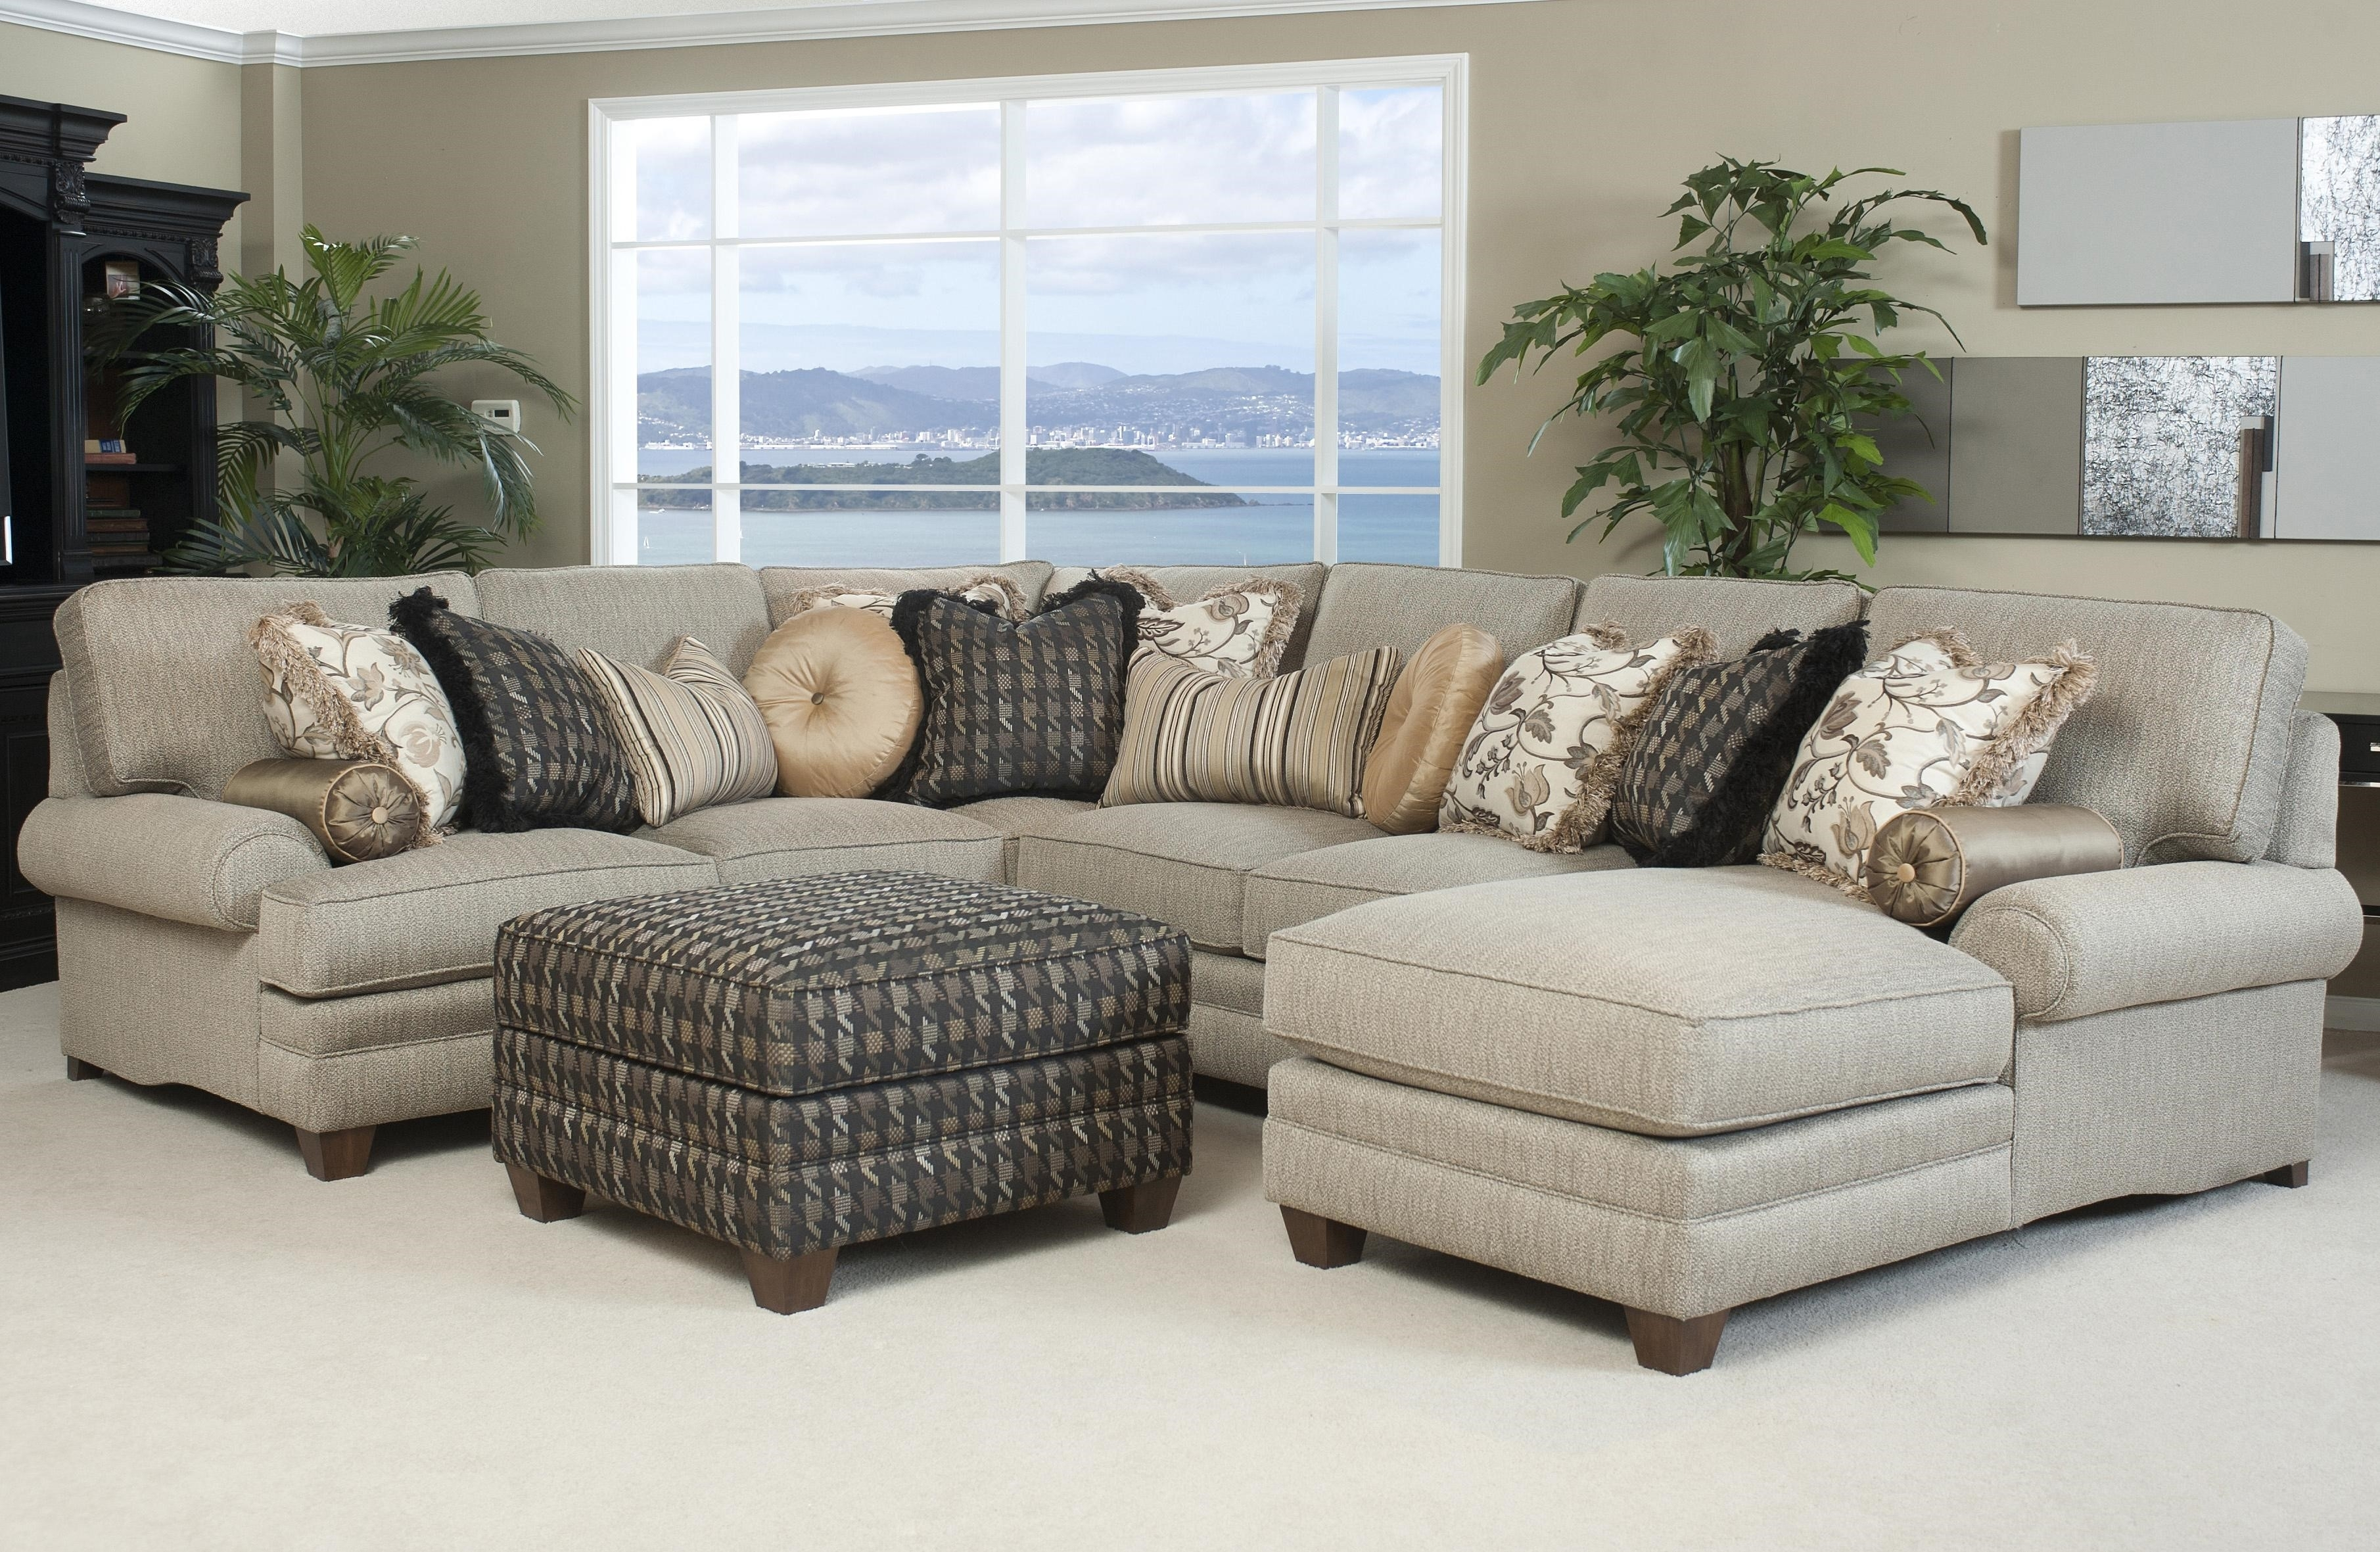 Perfect Sectional Sofas Tulsa 91 For Your Eco Friendly Sectional In Eco Friendly Sectional Sofas (View 9 of 10)